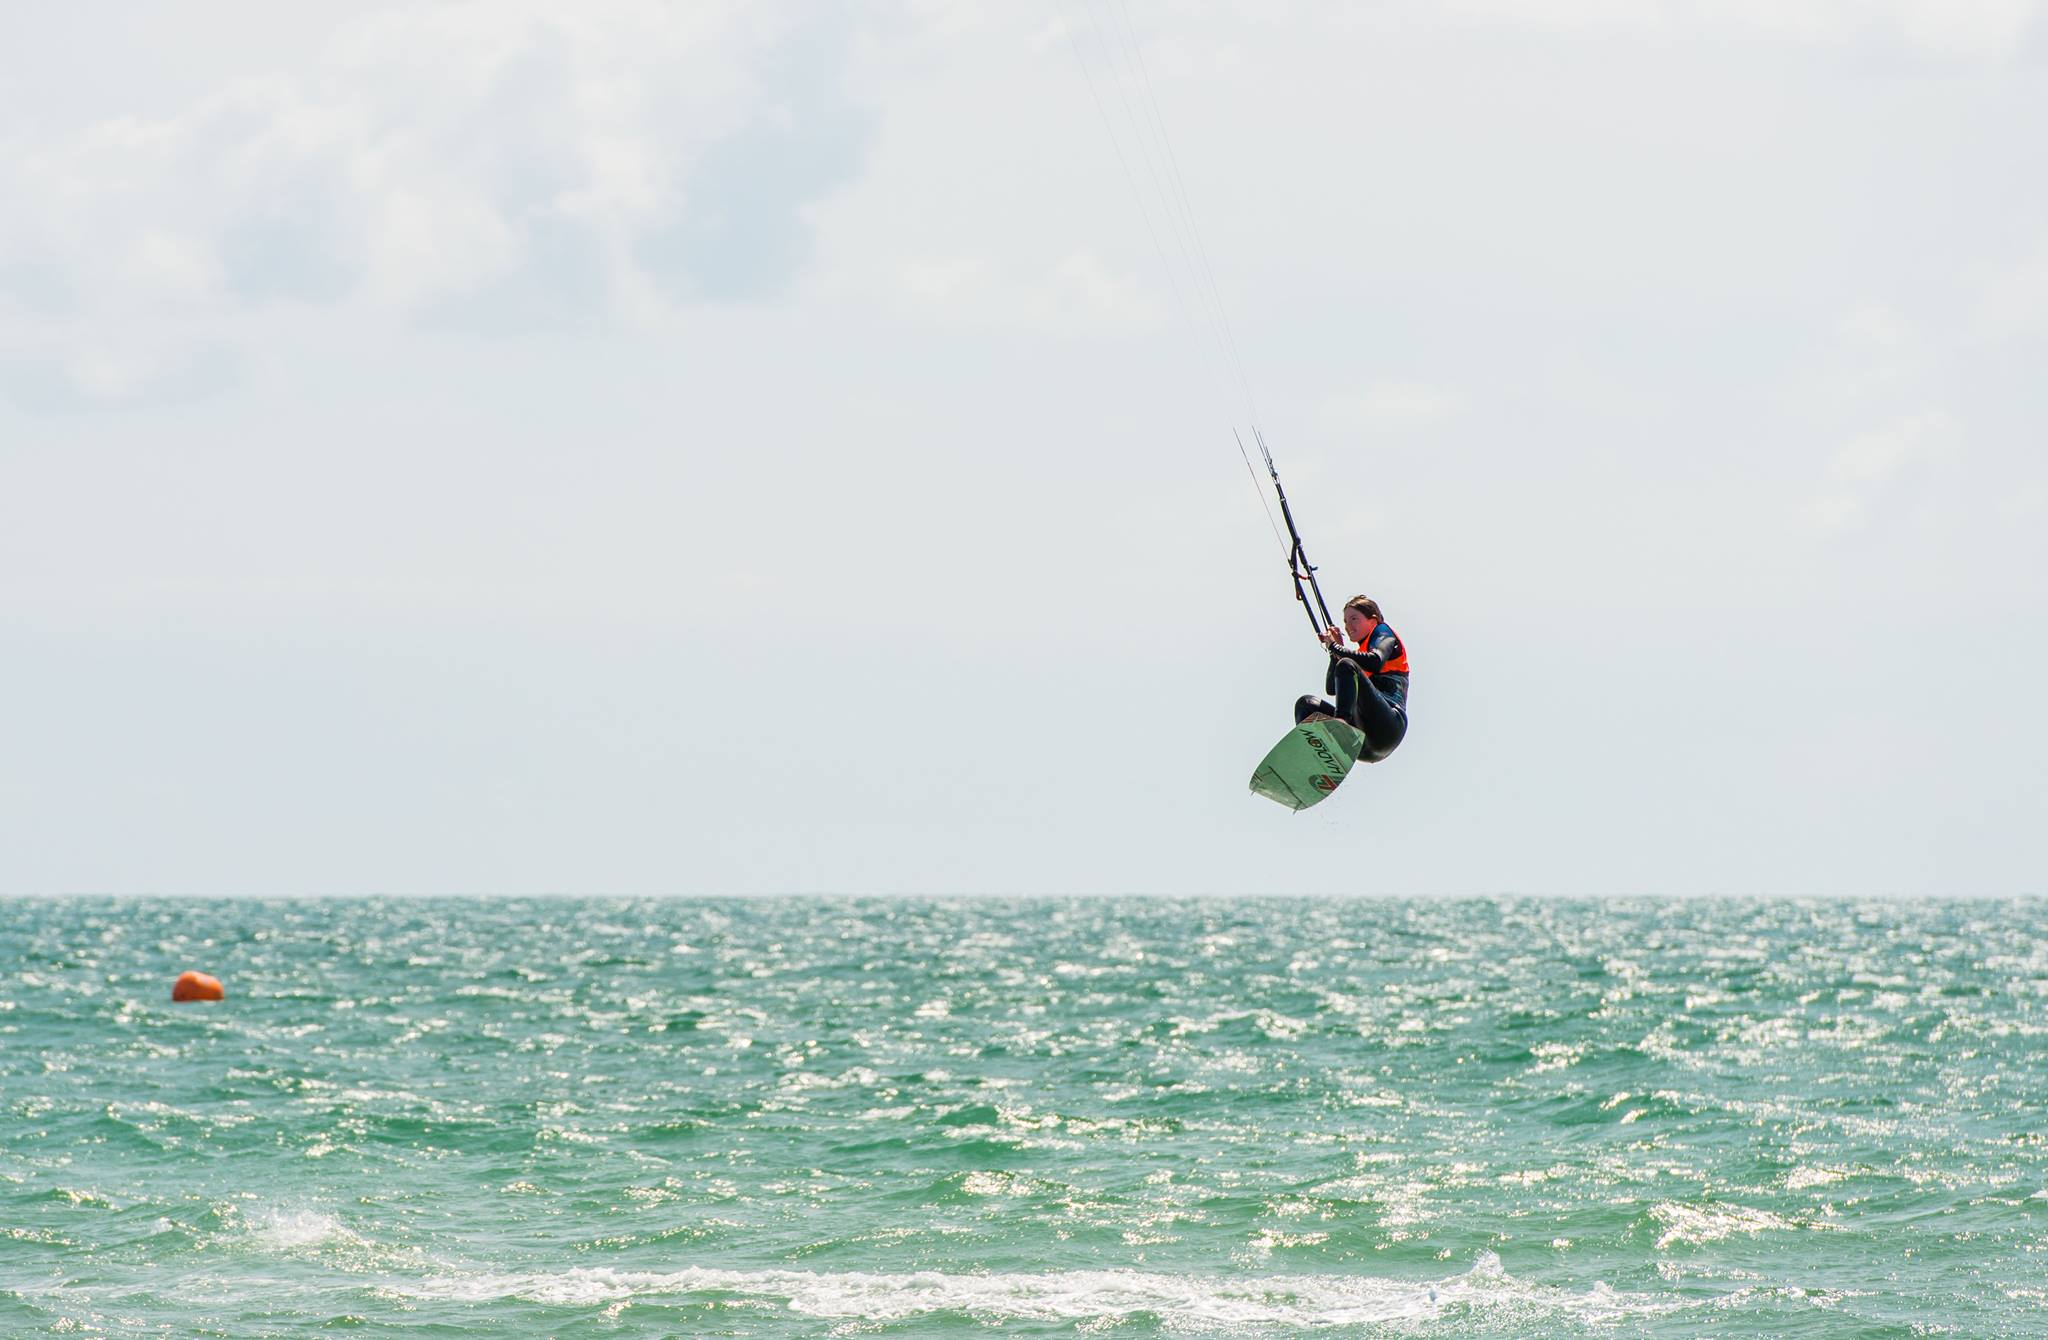 Christine Flying High in the Lancing Kitesurf Club Big Air Competition